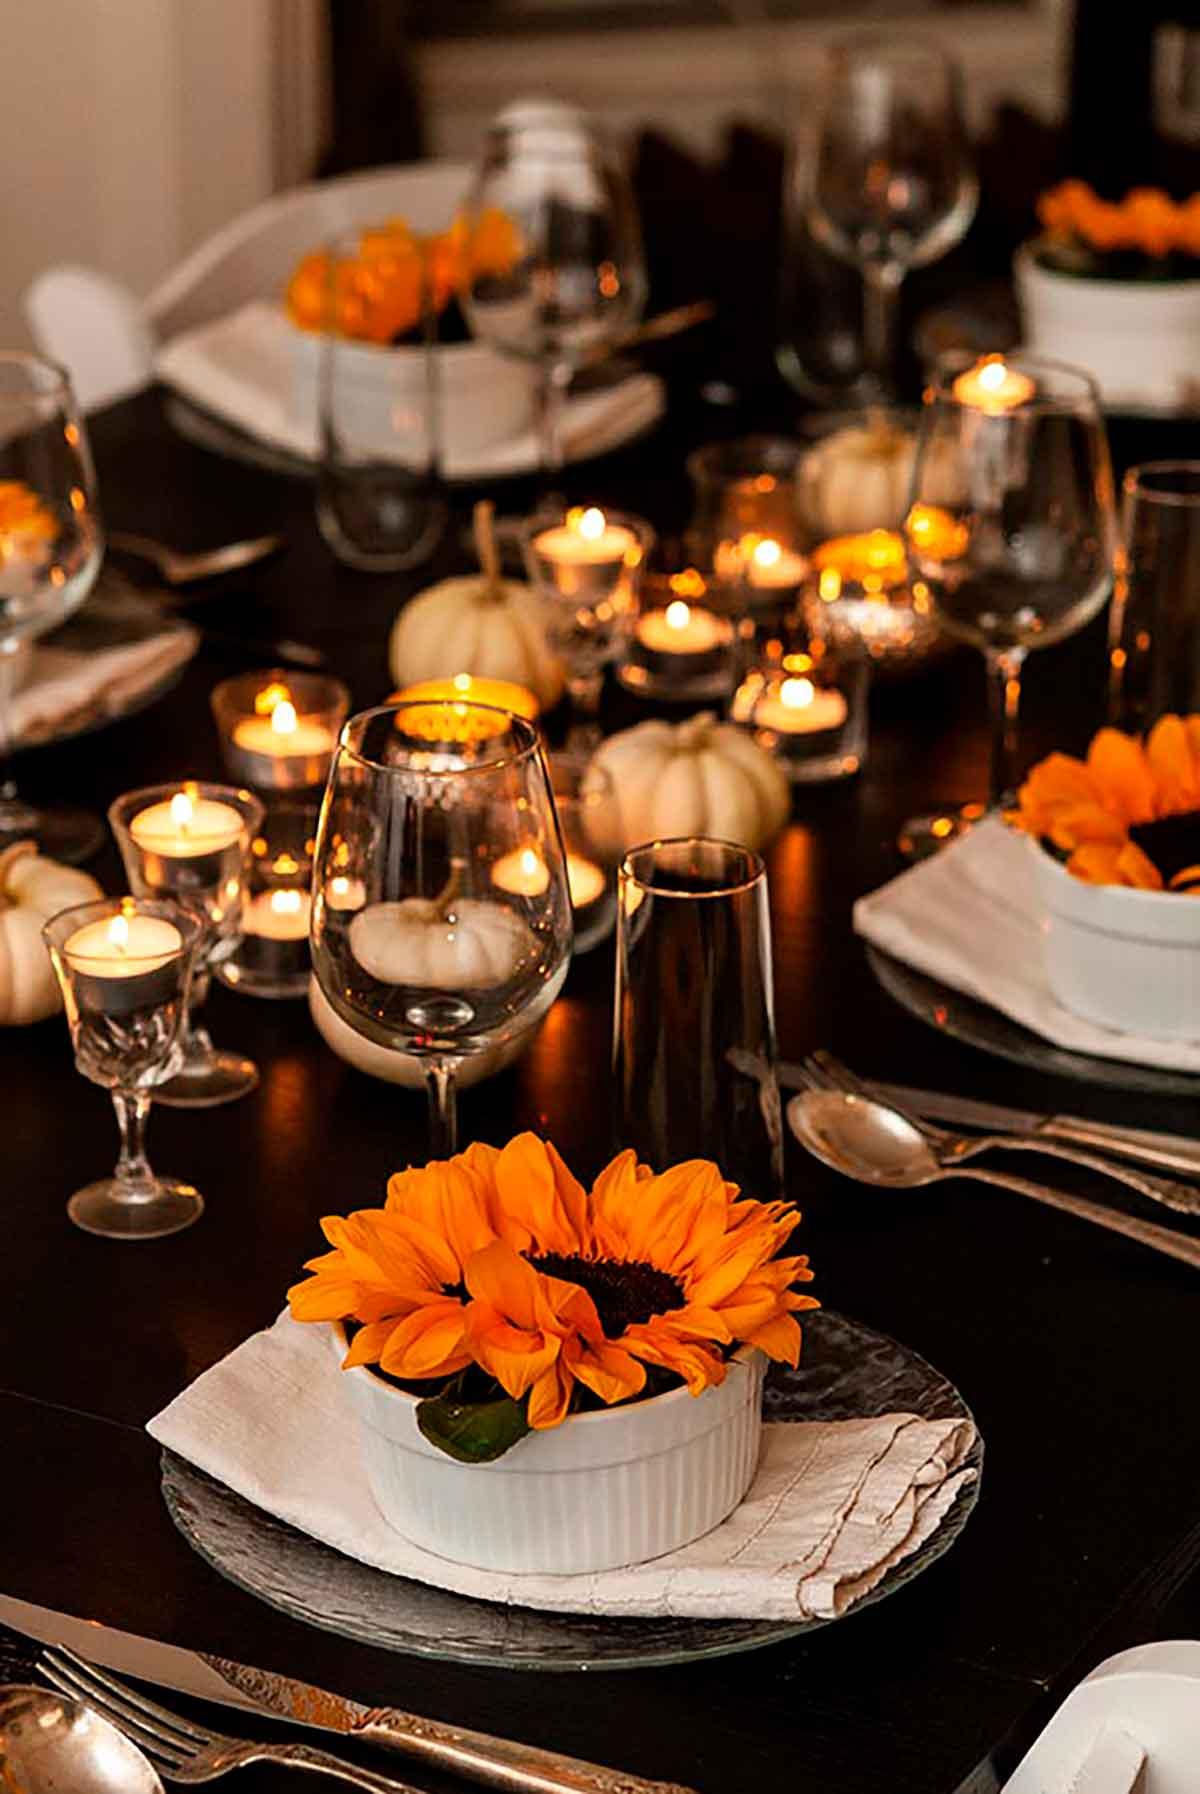 A dinner table set with tea lights, small white pumpkins, glassware and soup bowls with sunflowers inside.